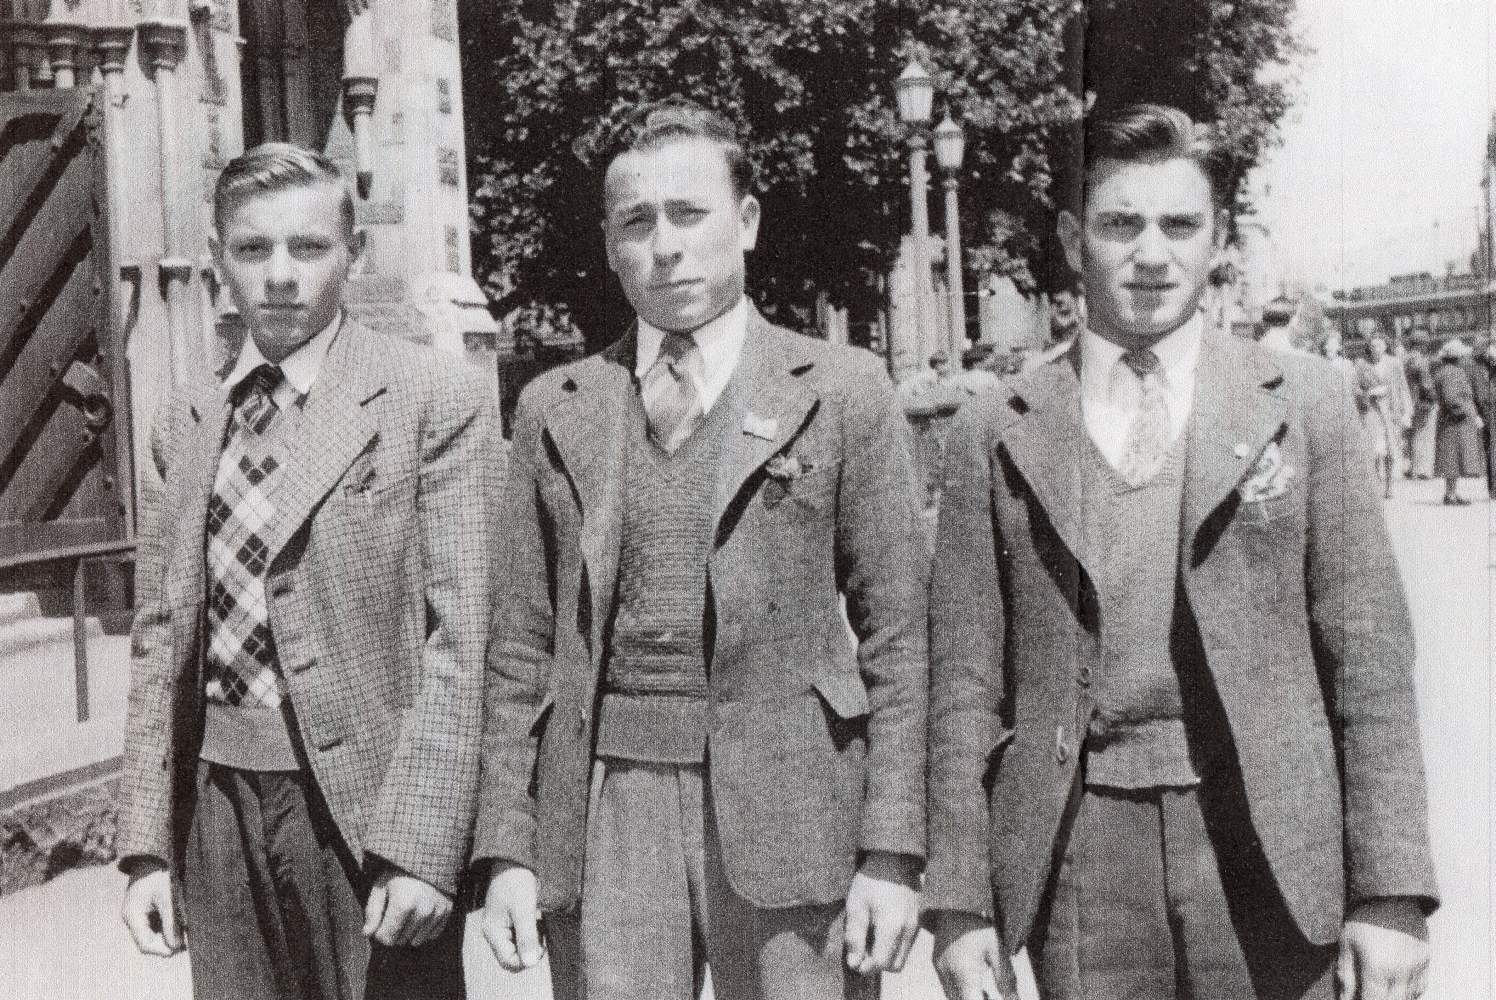 Three smartly-dressed young  men outside what looks like a church.